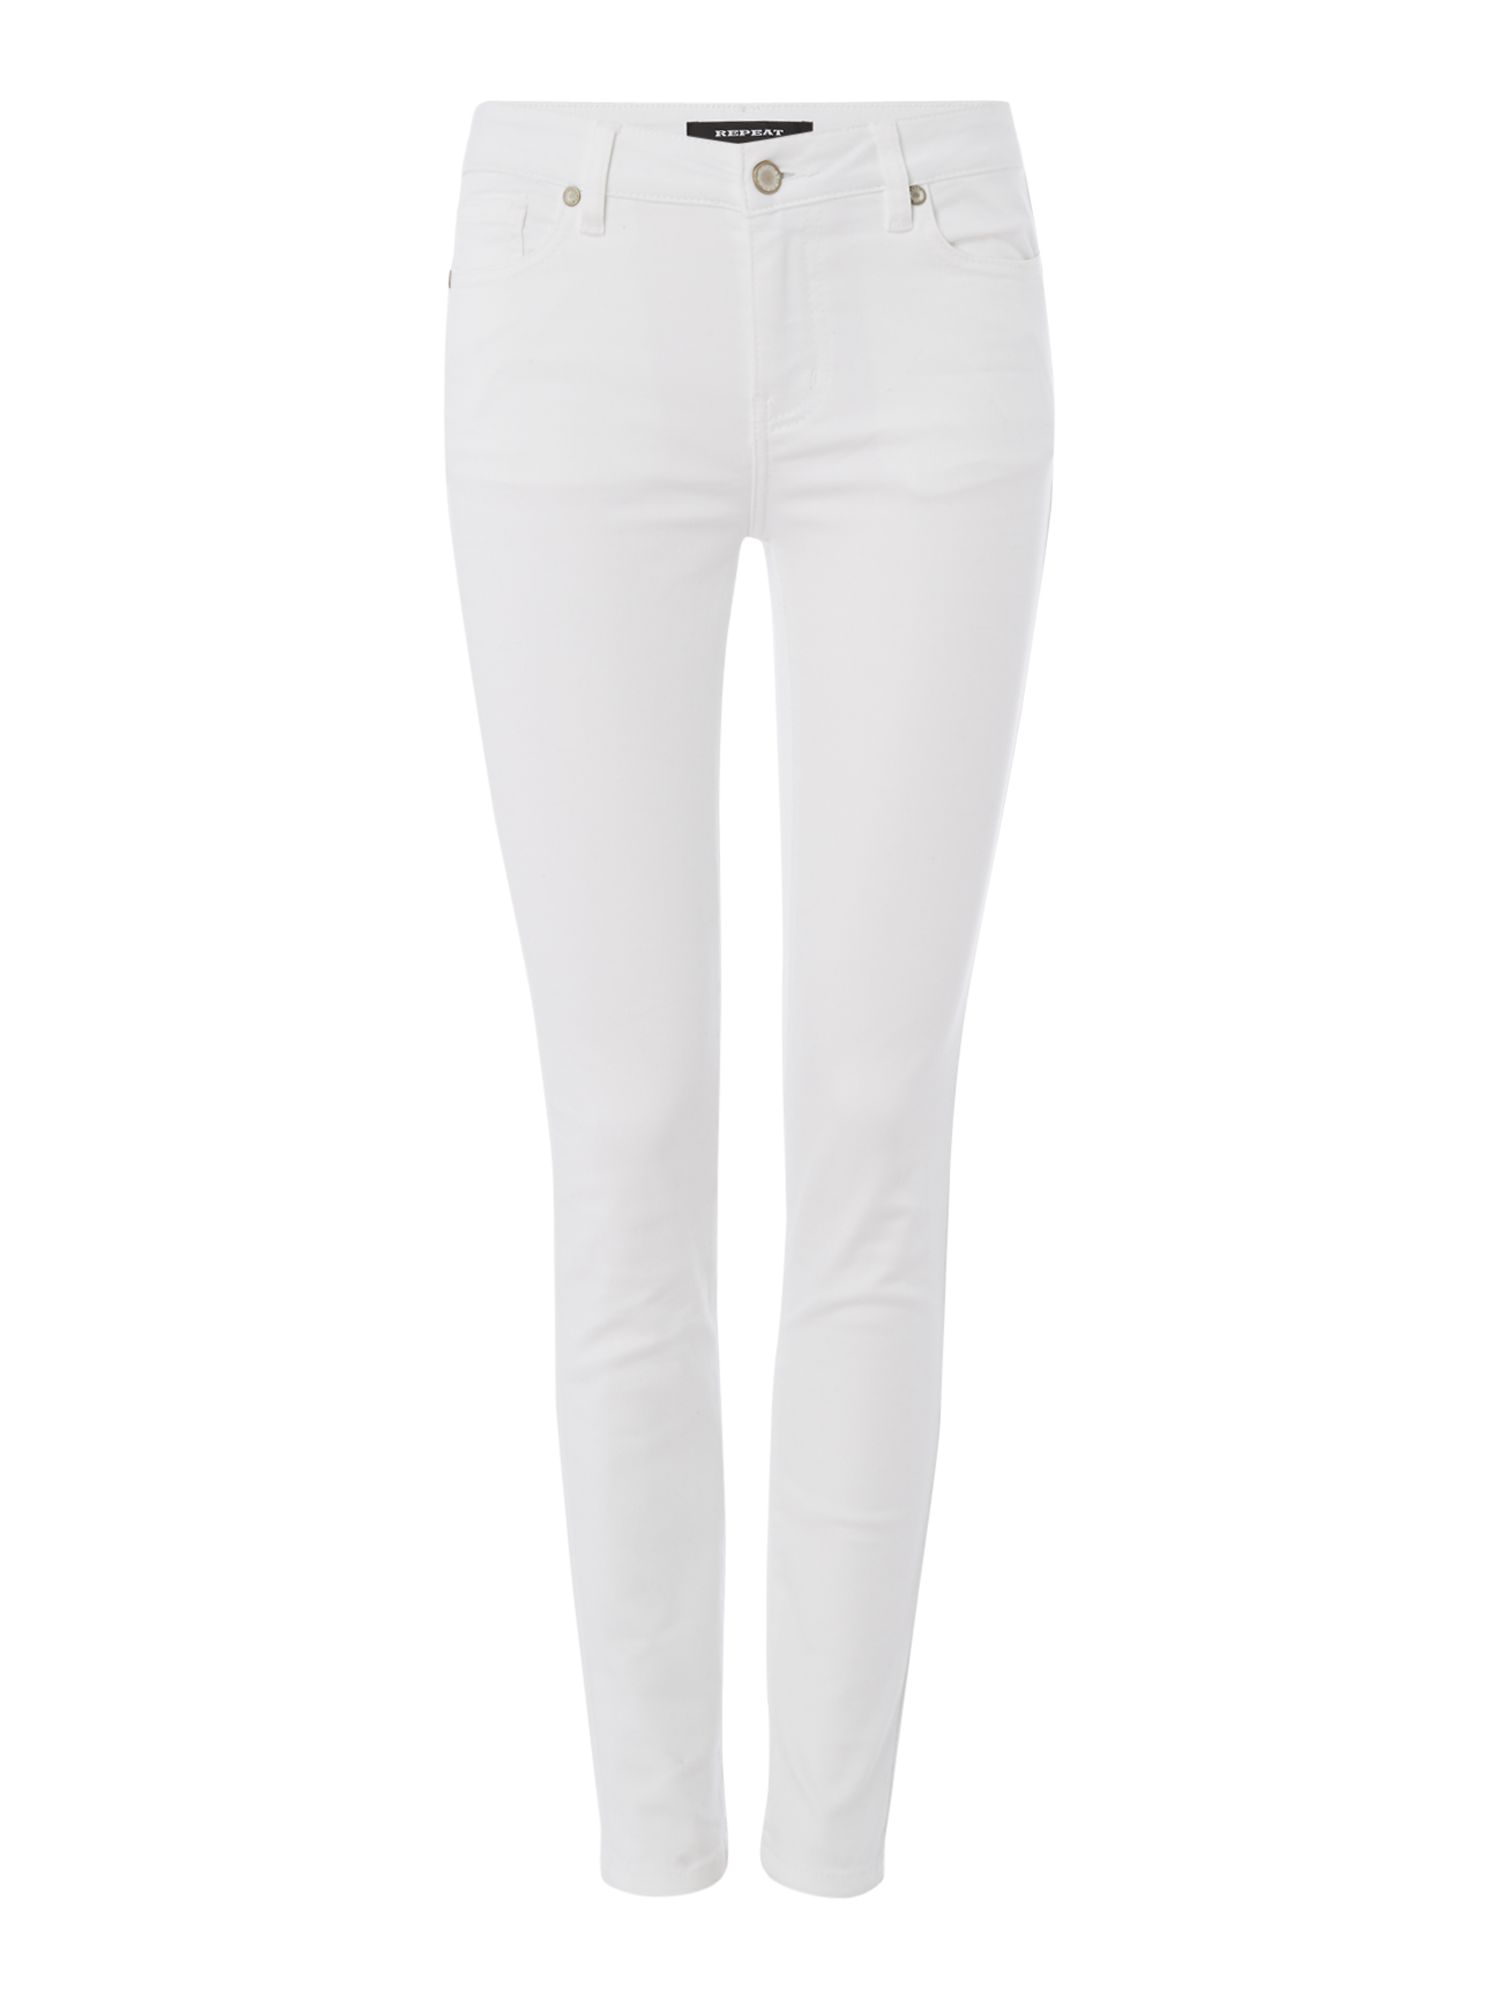 Repeat Cashmere Skinny jeans, White